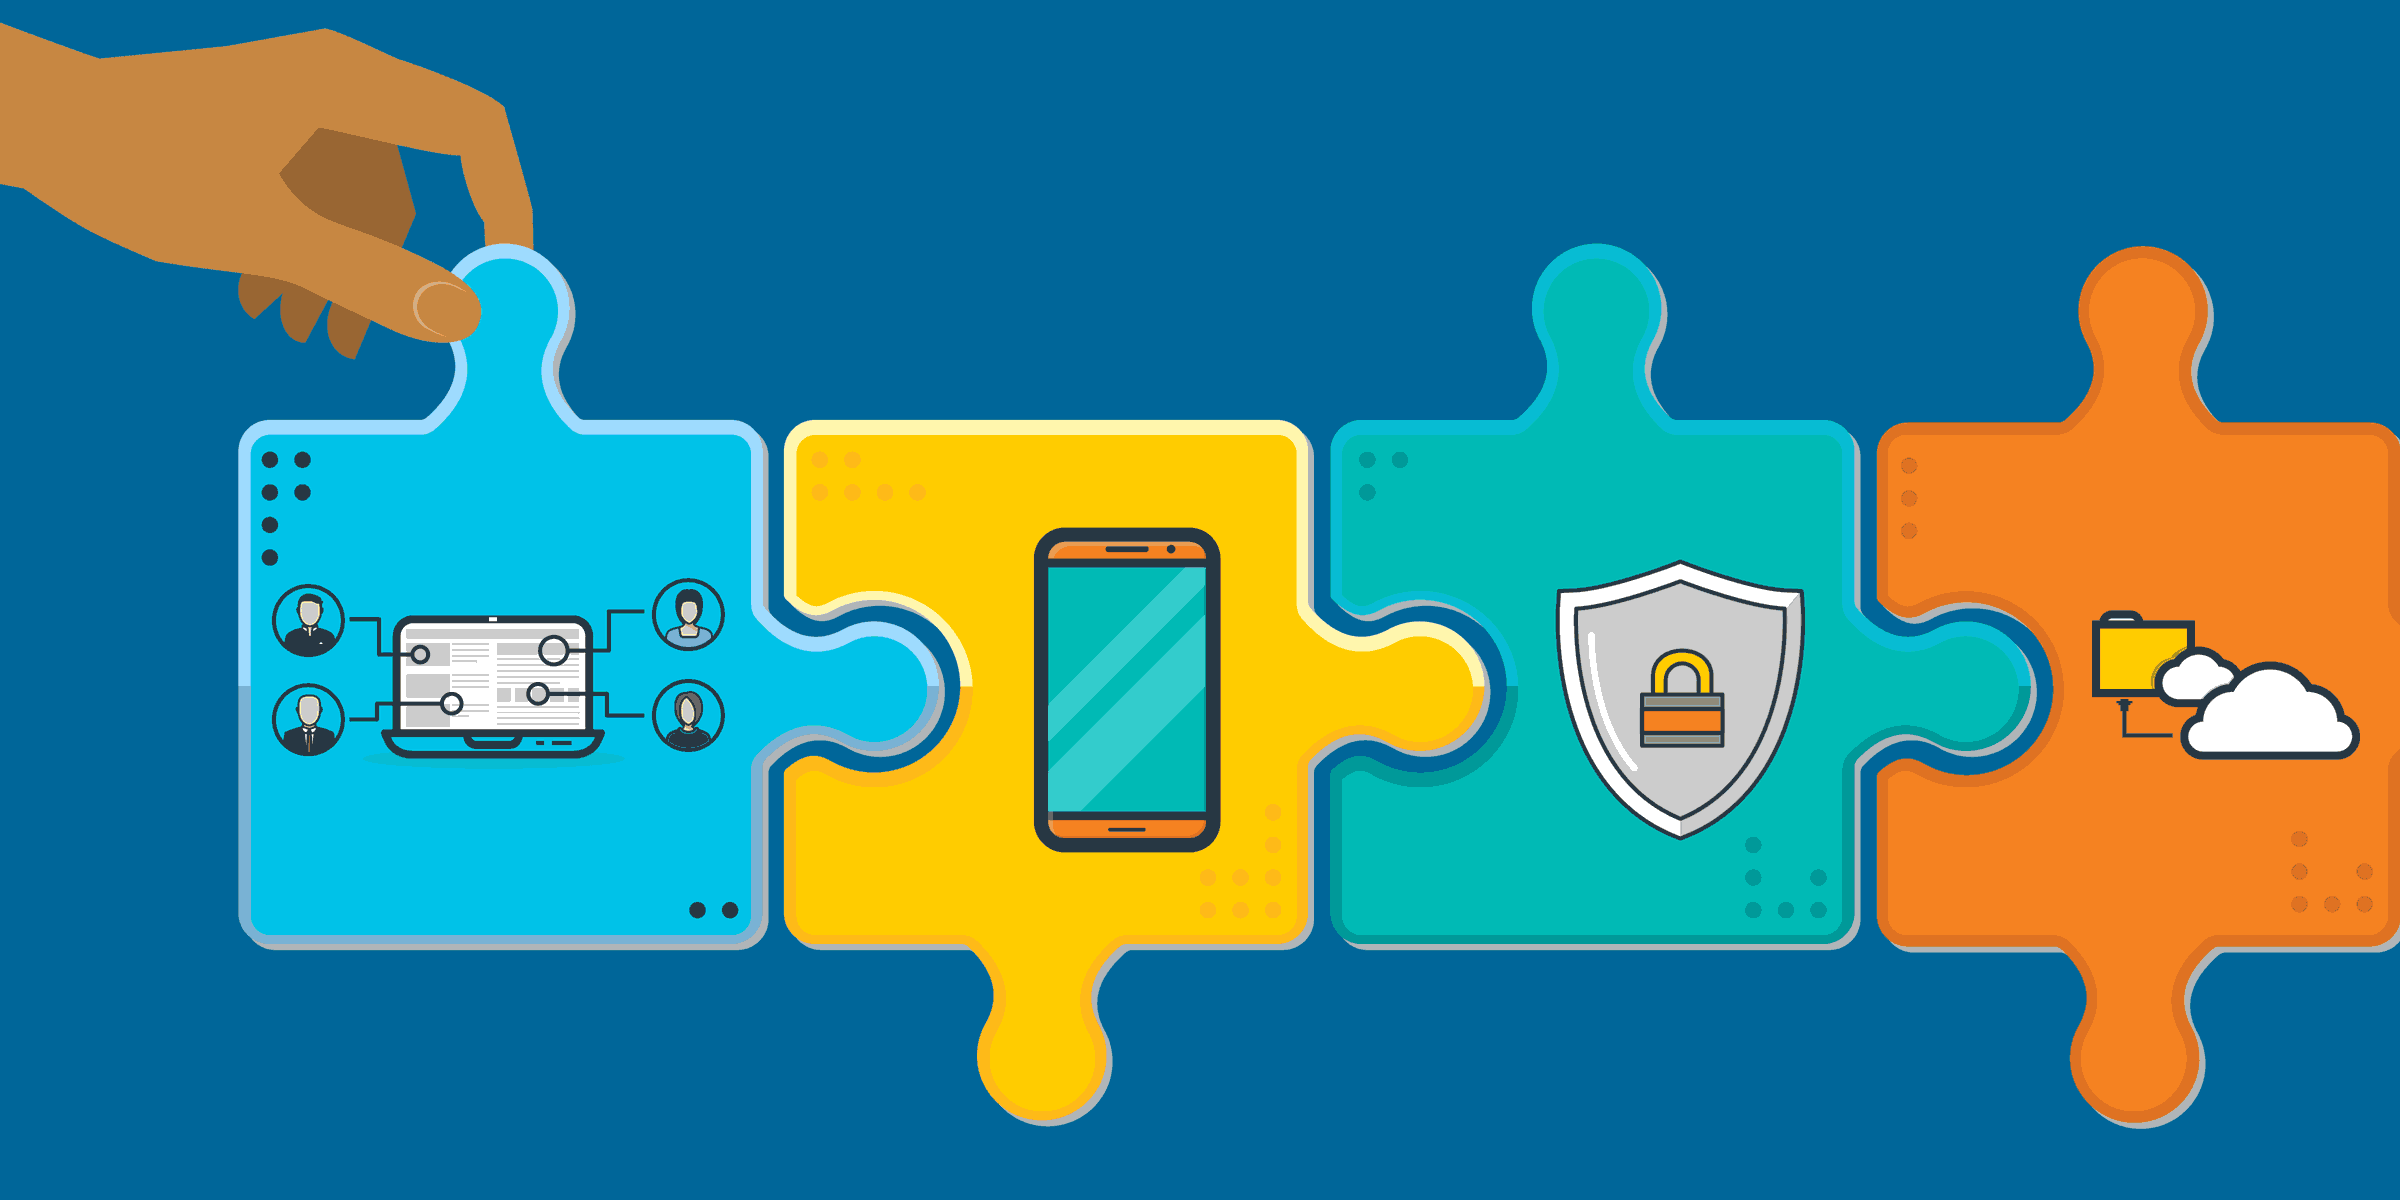 illustration of four puzzle pieces with remote workers, a mobile phone, security software, and cloud computing on them, representing the future of work for nonprofits